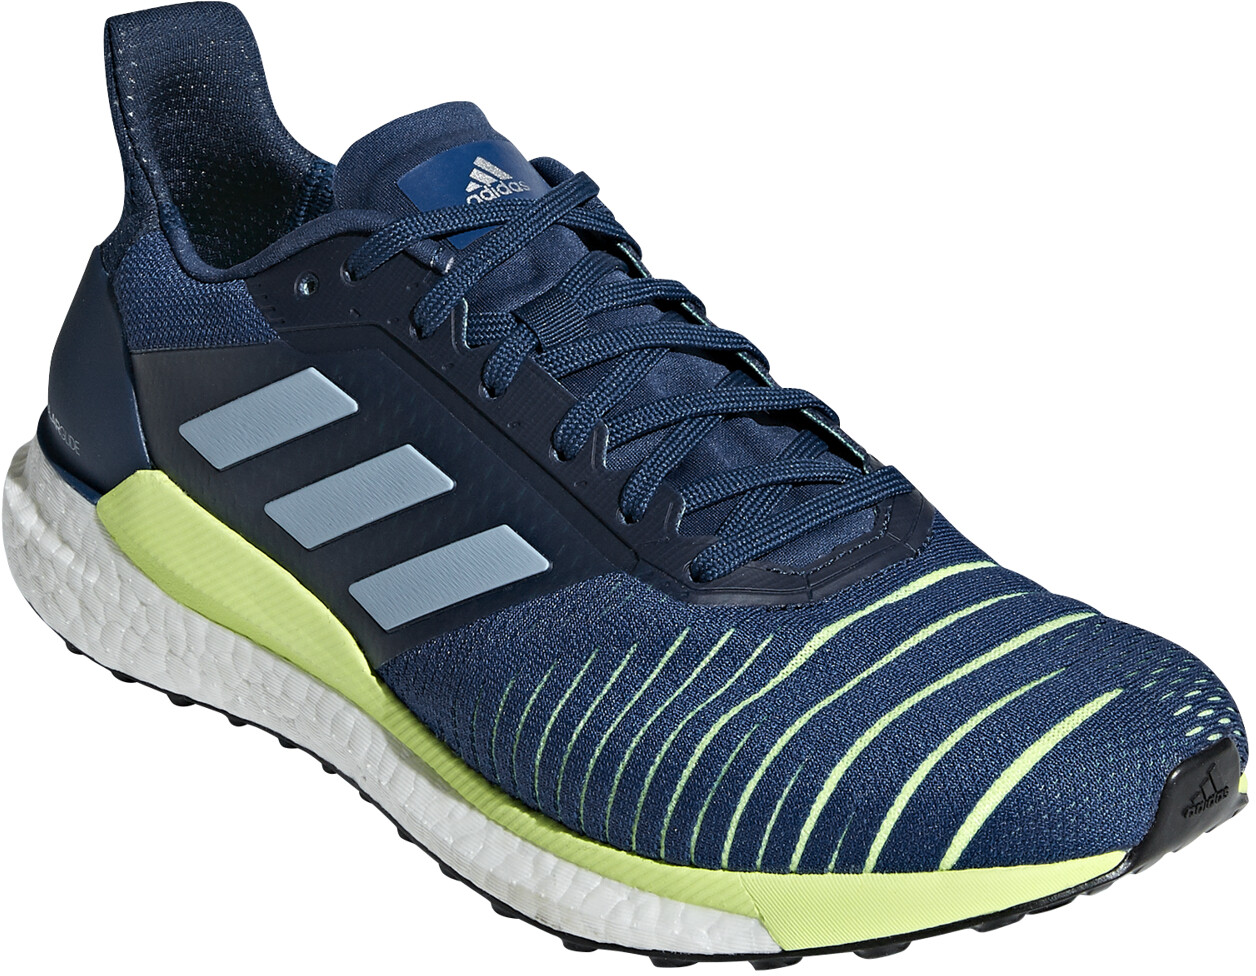 9fa50b645ddcb adidas Solar Glide Running Shoes Men blue at Bikester.co.uk